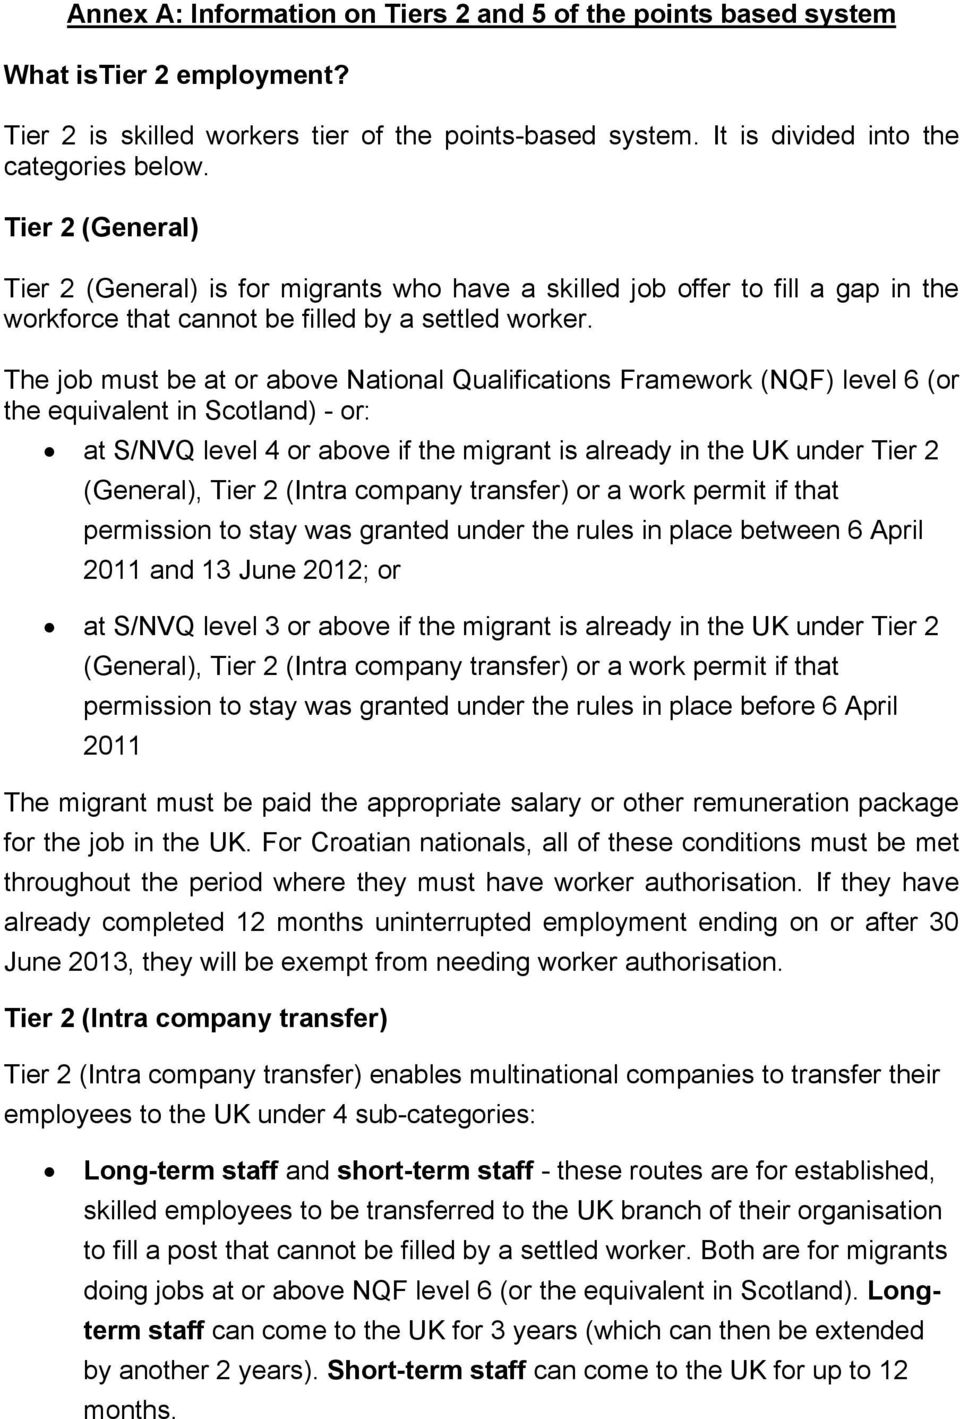 The job must be at or above National Qualifications Framework (NQF) level 6 (or the equivalent in Scotland) - or: at S/NVQ level 4 or above if the migrant is already in the UK under Tier 2 (General),